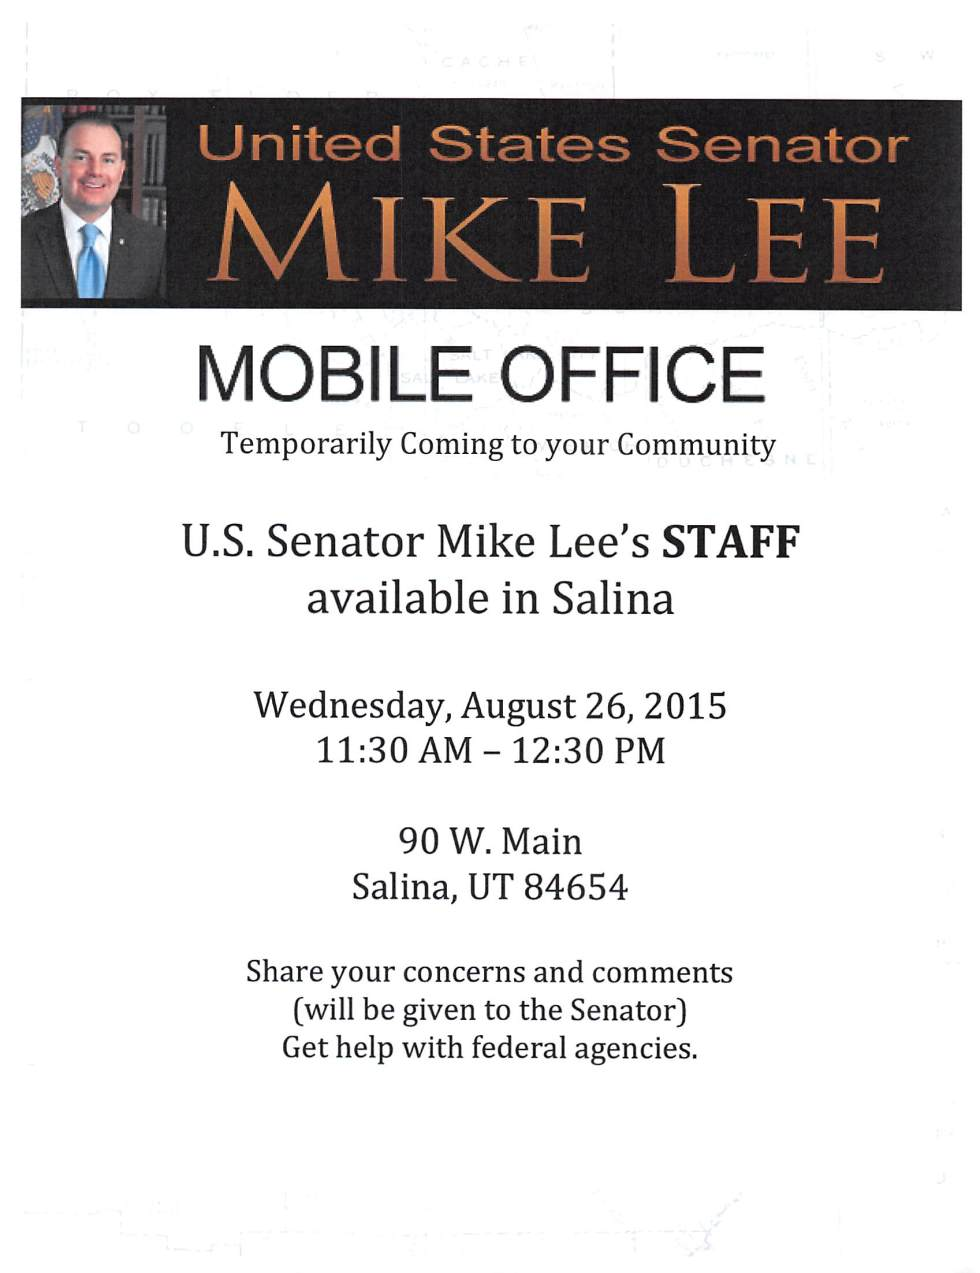 United States Senator Mike Lee in Salina Utah August 26th, 2015